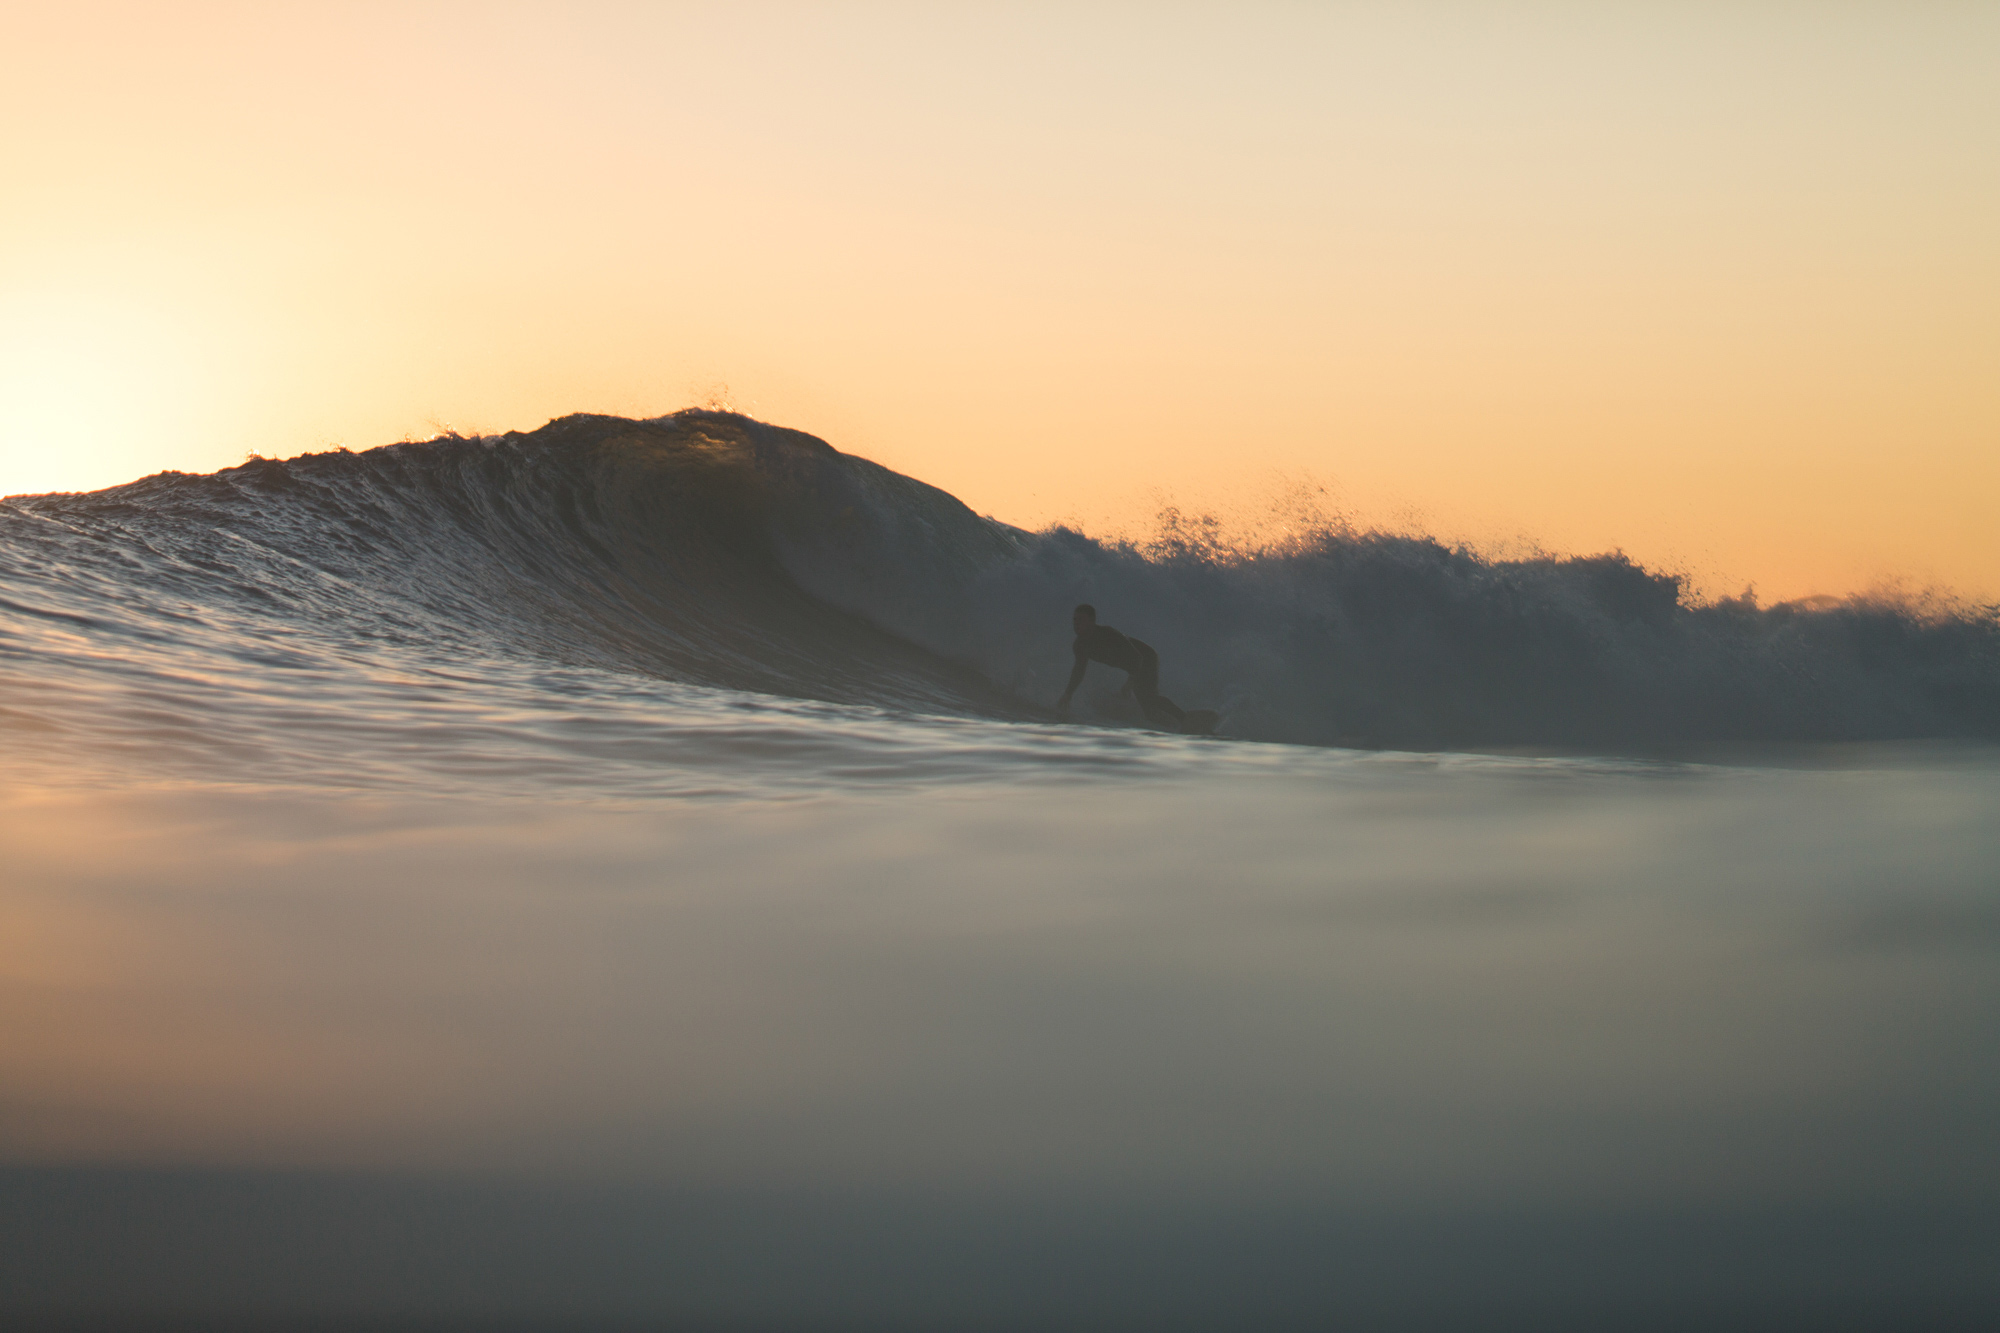 Surfing and Landscape Photography Bas Van Est